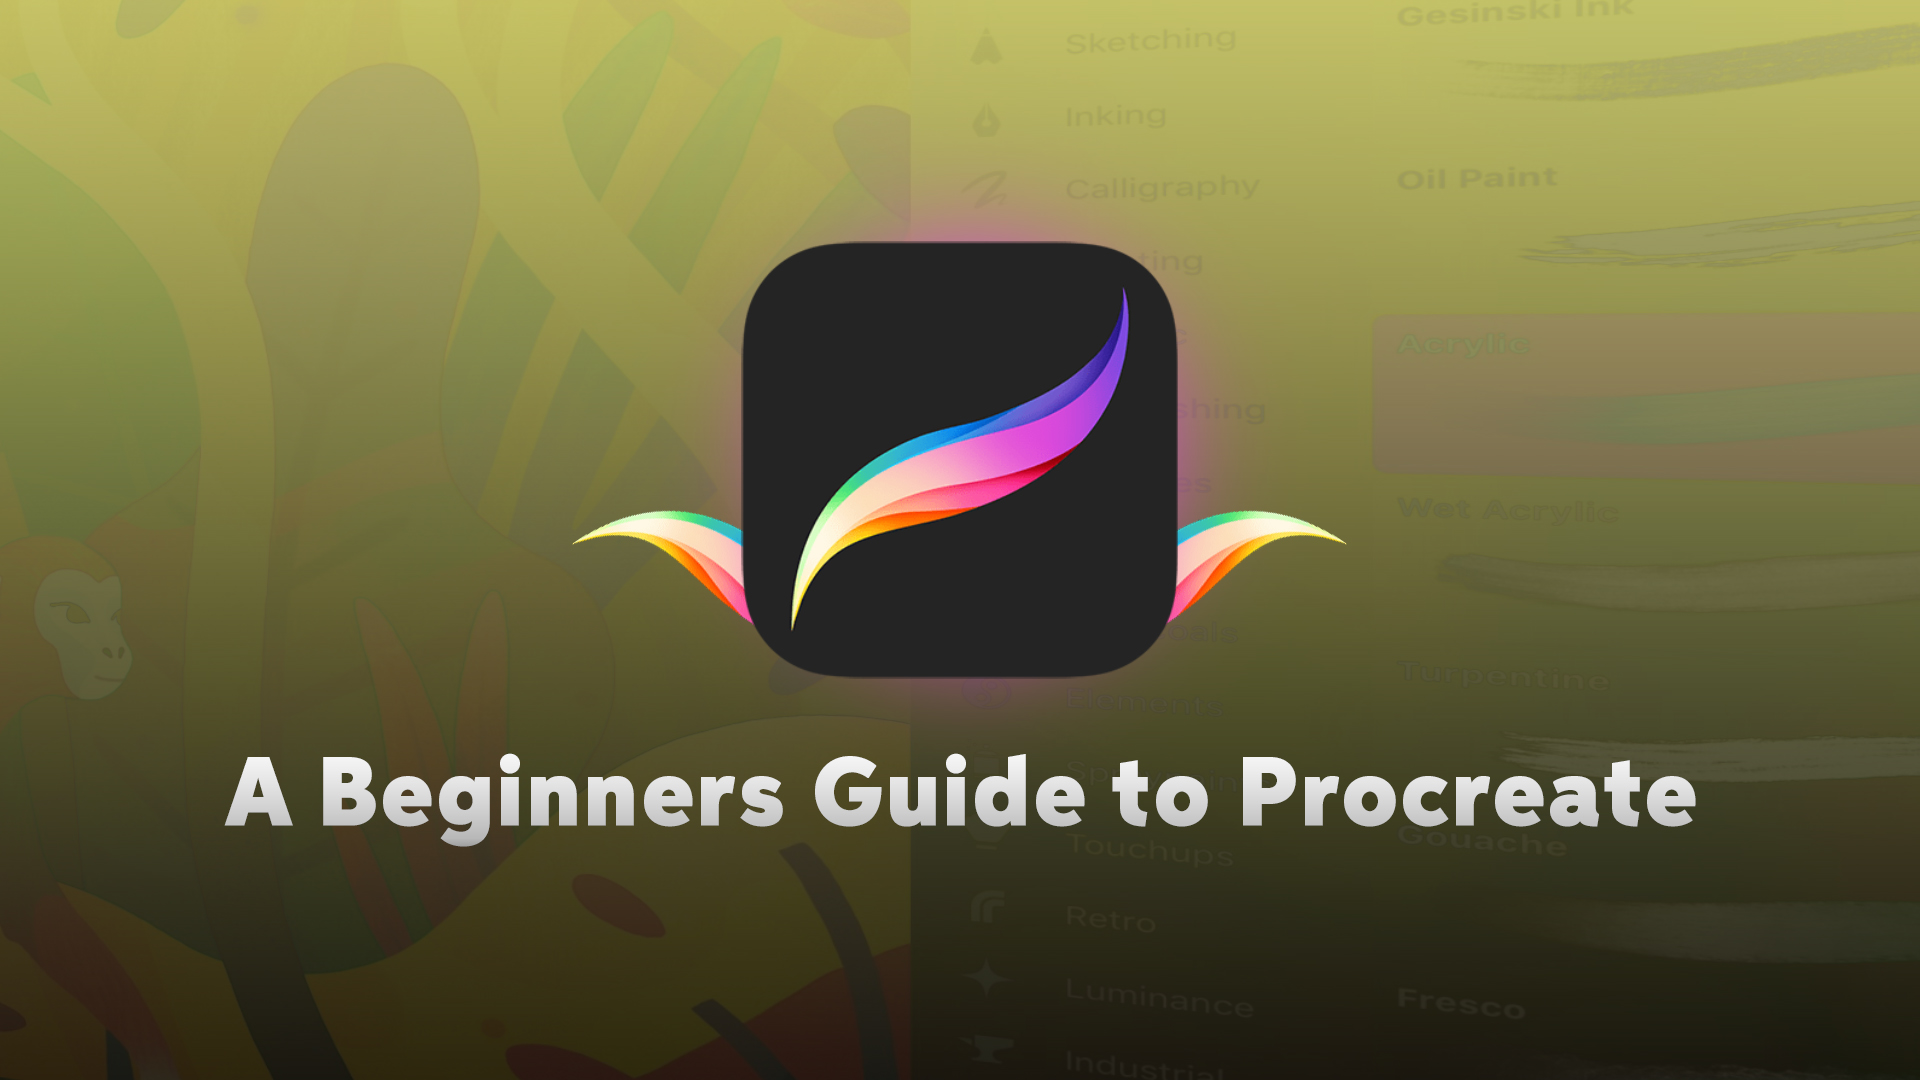 A Beginners Guide to Procreate